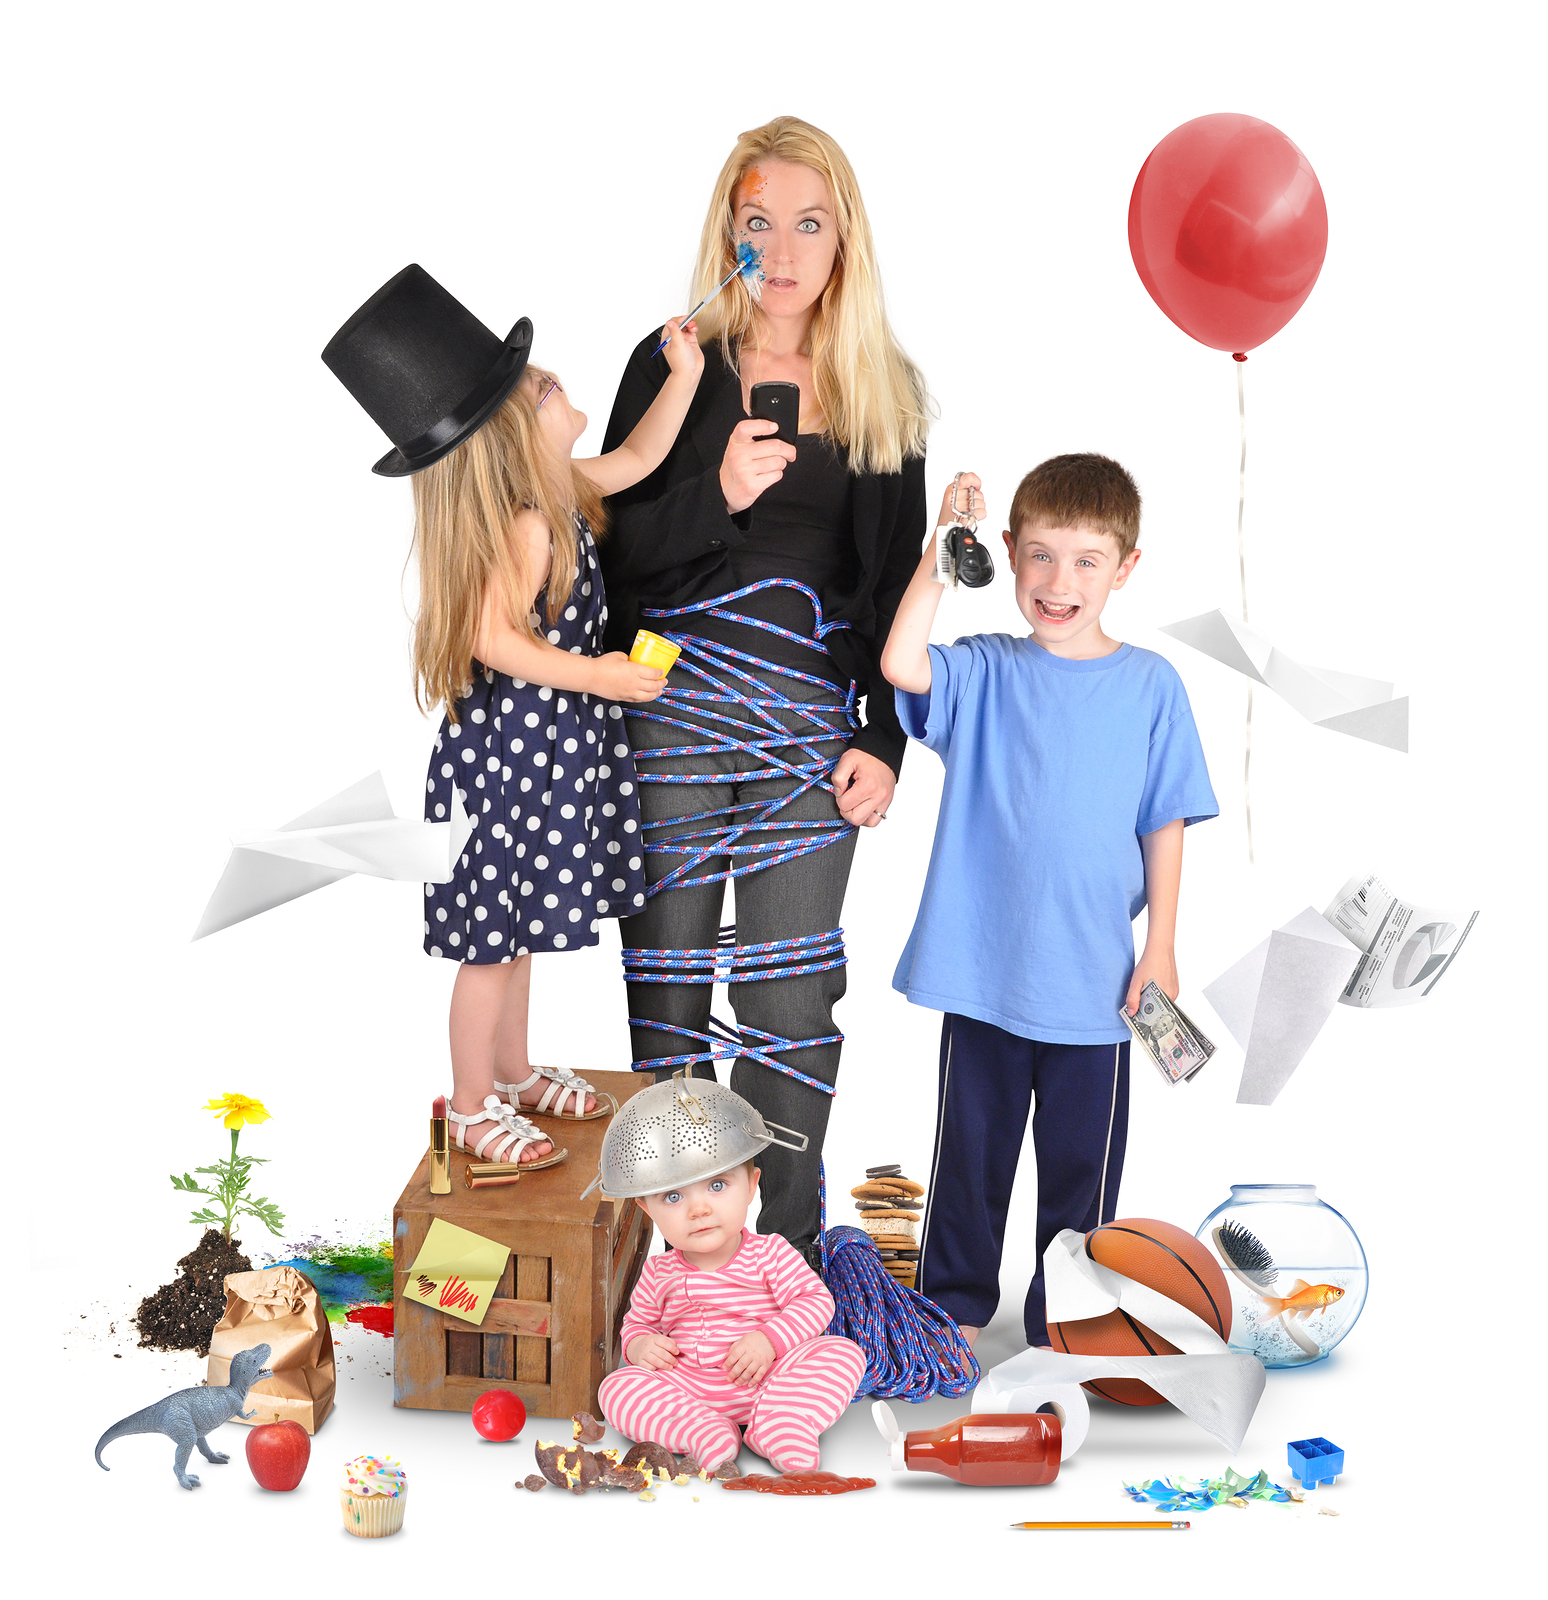 malo single parents A love beyond borders is a full service international and domestic adoption agency in denver, colorado we also provide homestudy services, single parent adoptions and adoption funding counseling.